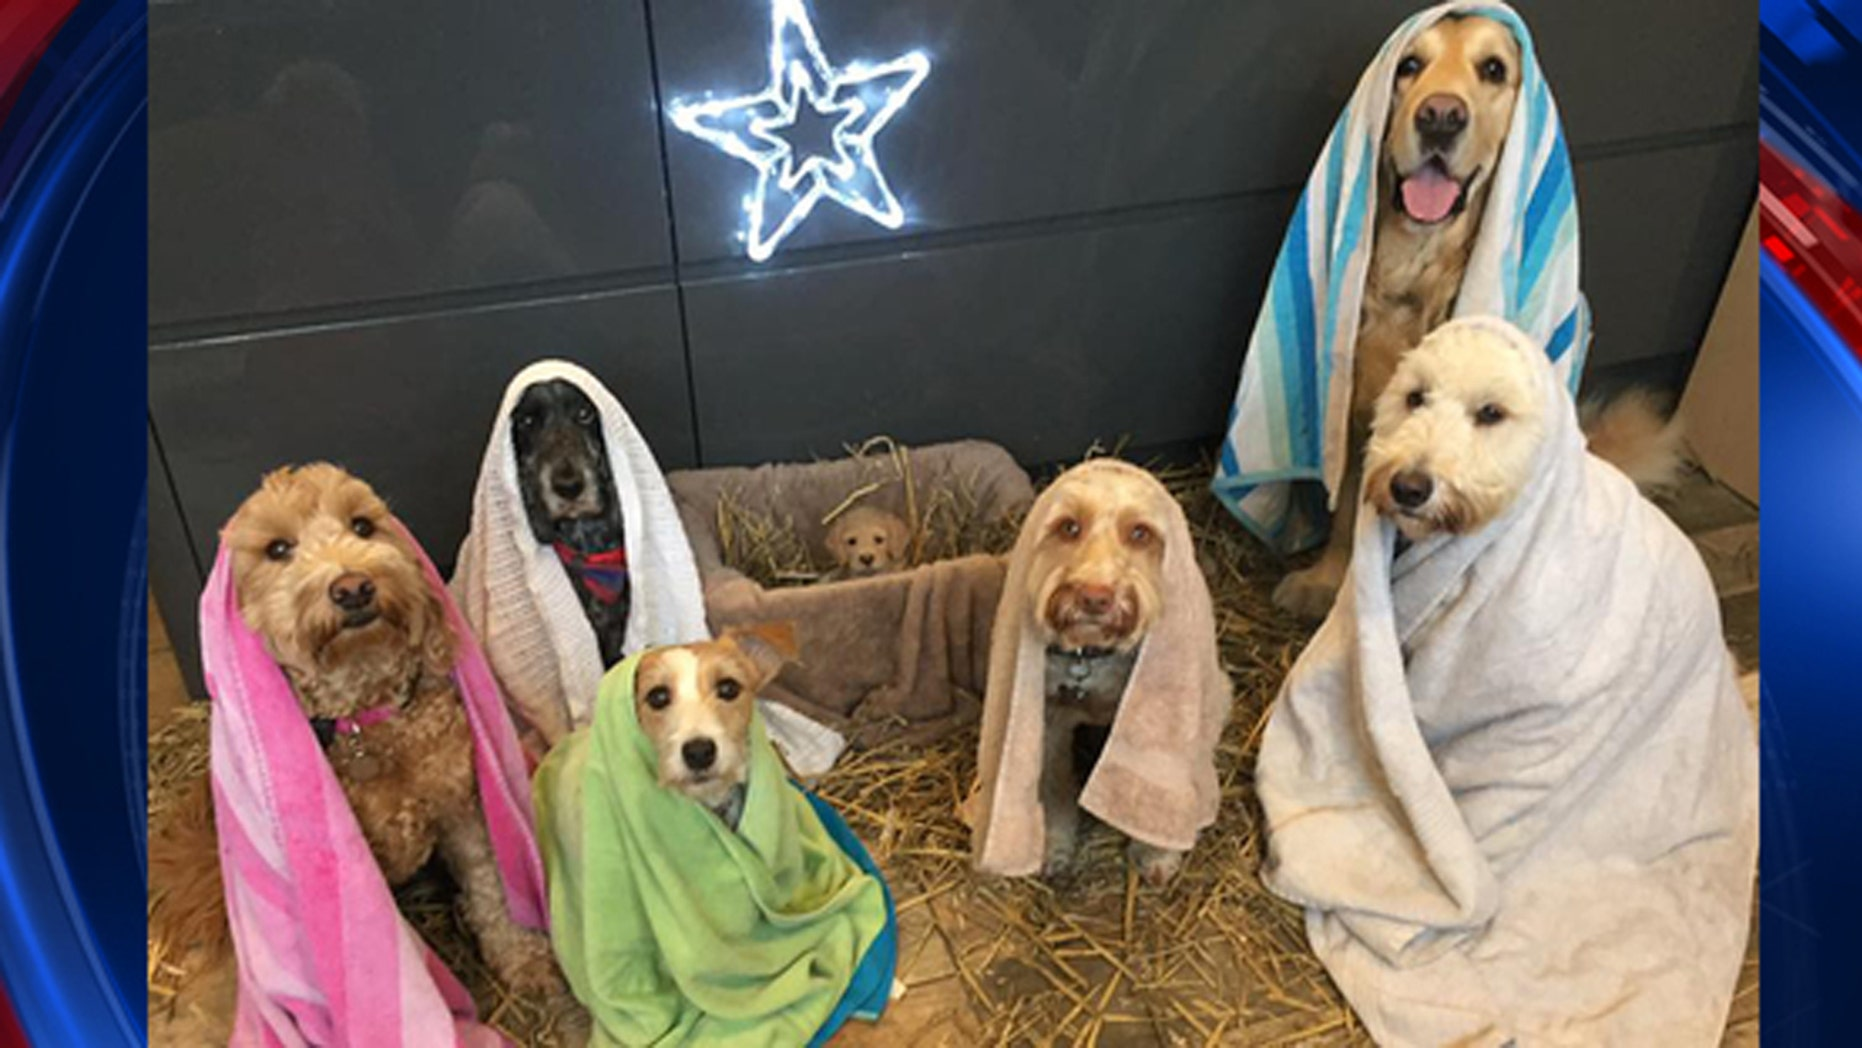 A UK dog groomer recreated the Nativity Scene using adorable pooches, including a puppy in the manger.